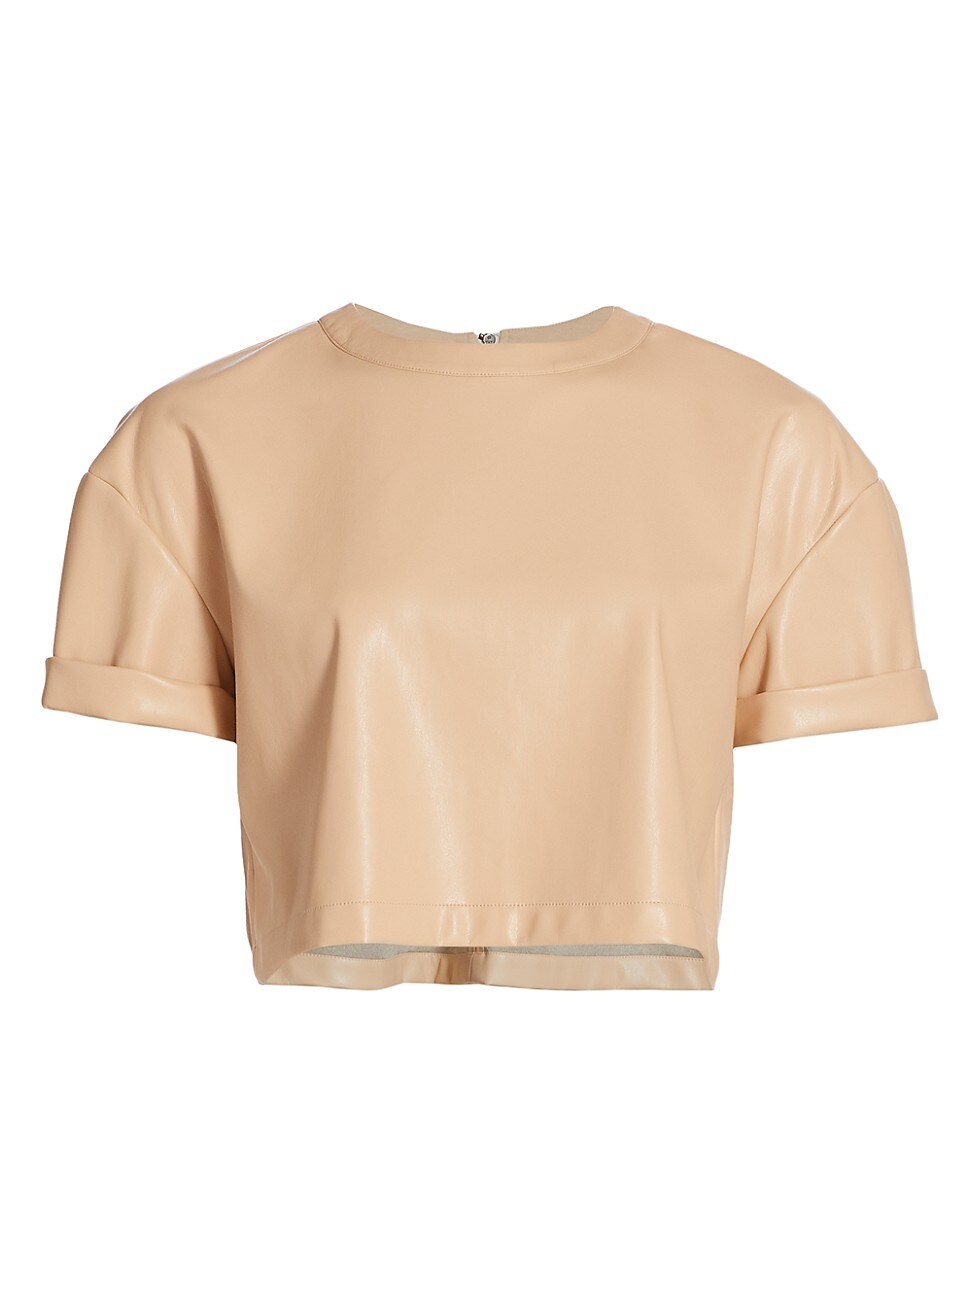 Alice And Olivia WOMEN'S SERITA VEGAN LEATHER BOXY CROP TOP